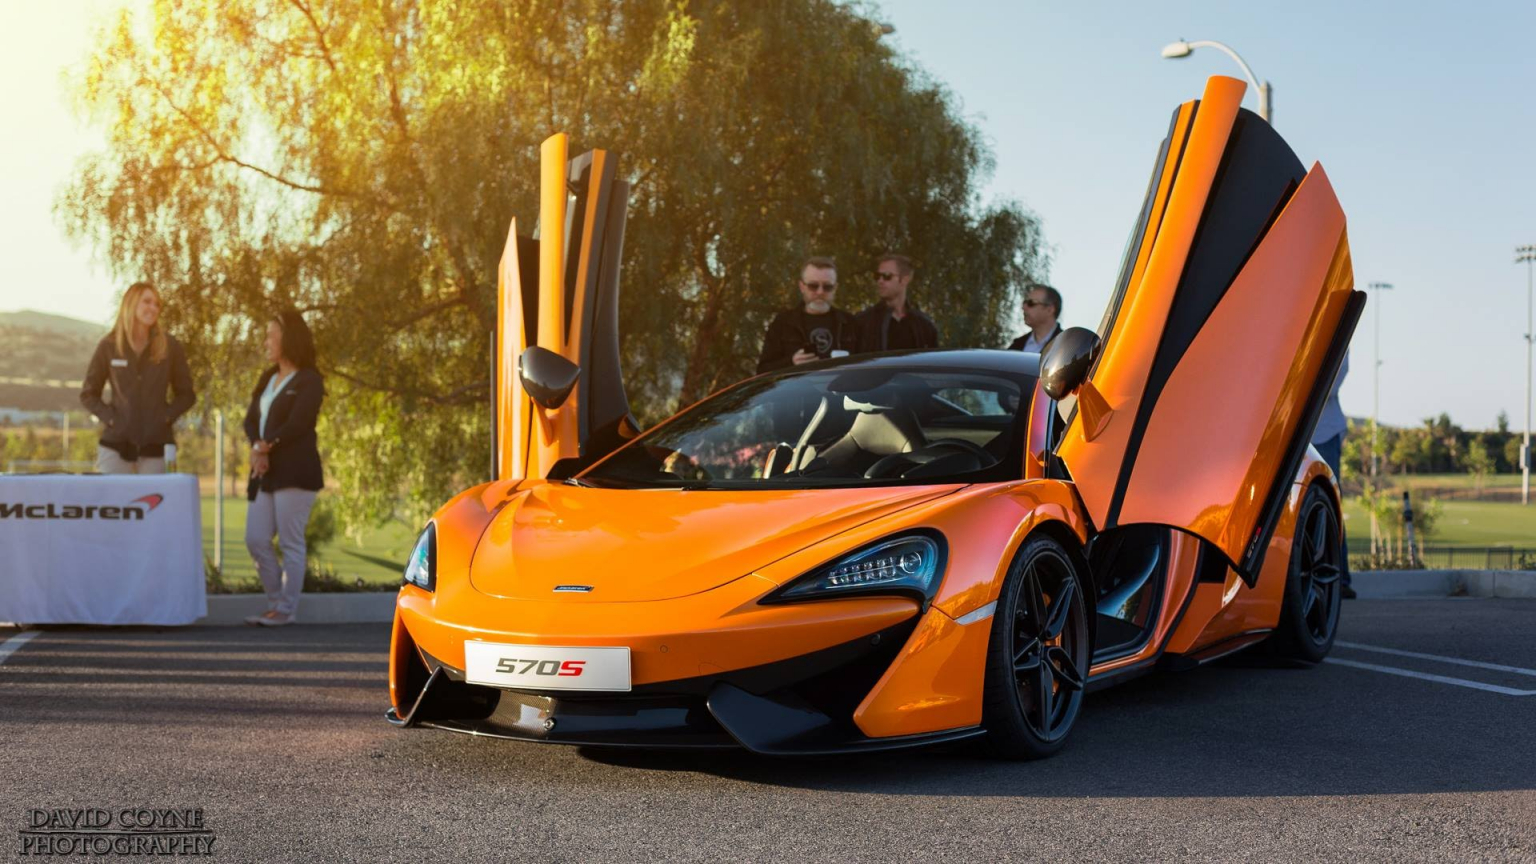 Free download McLaren 570S Coupe With Two Doors 22507 ...